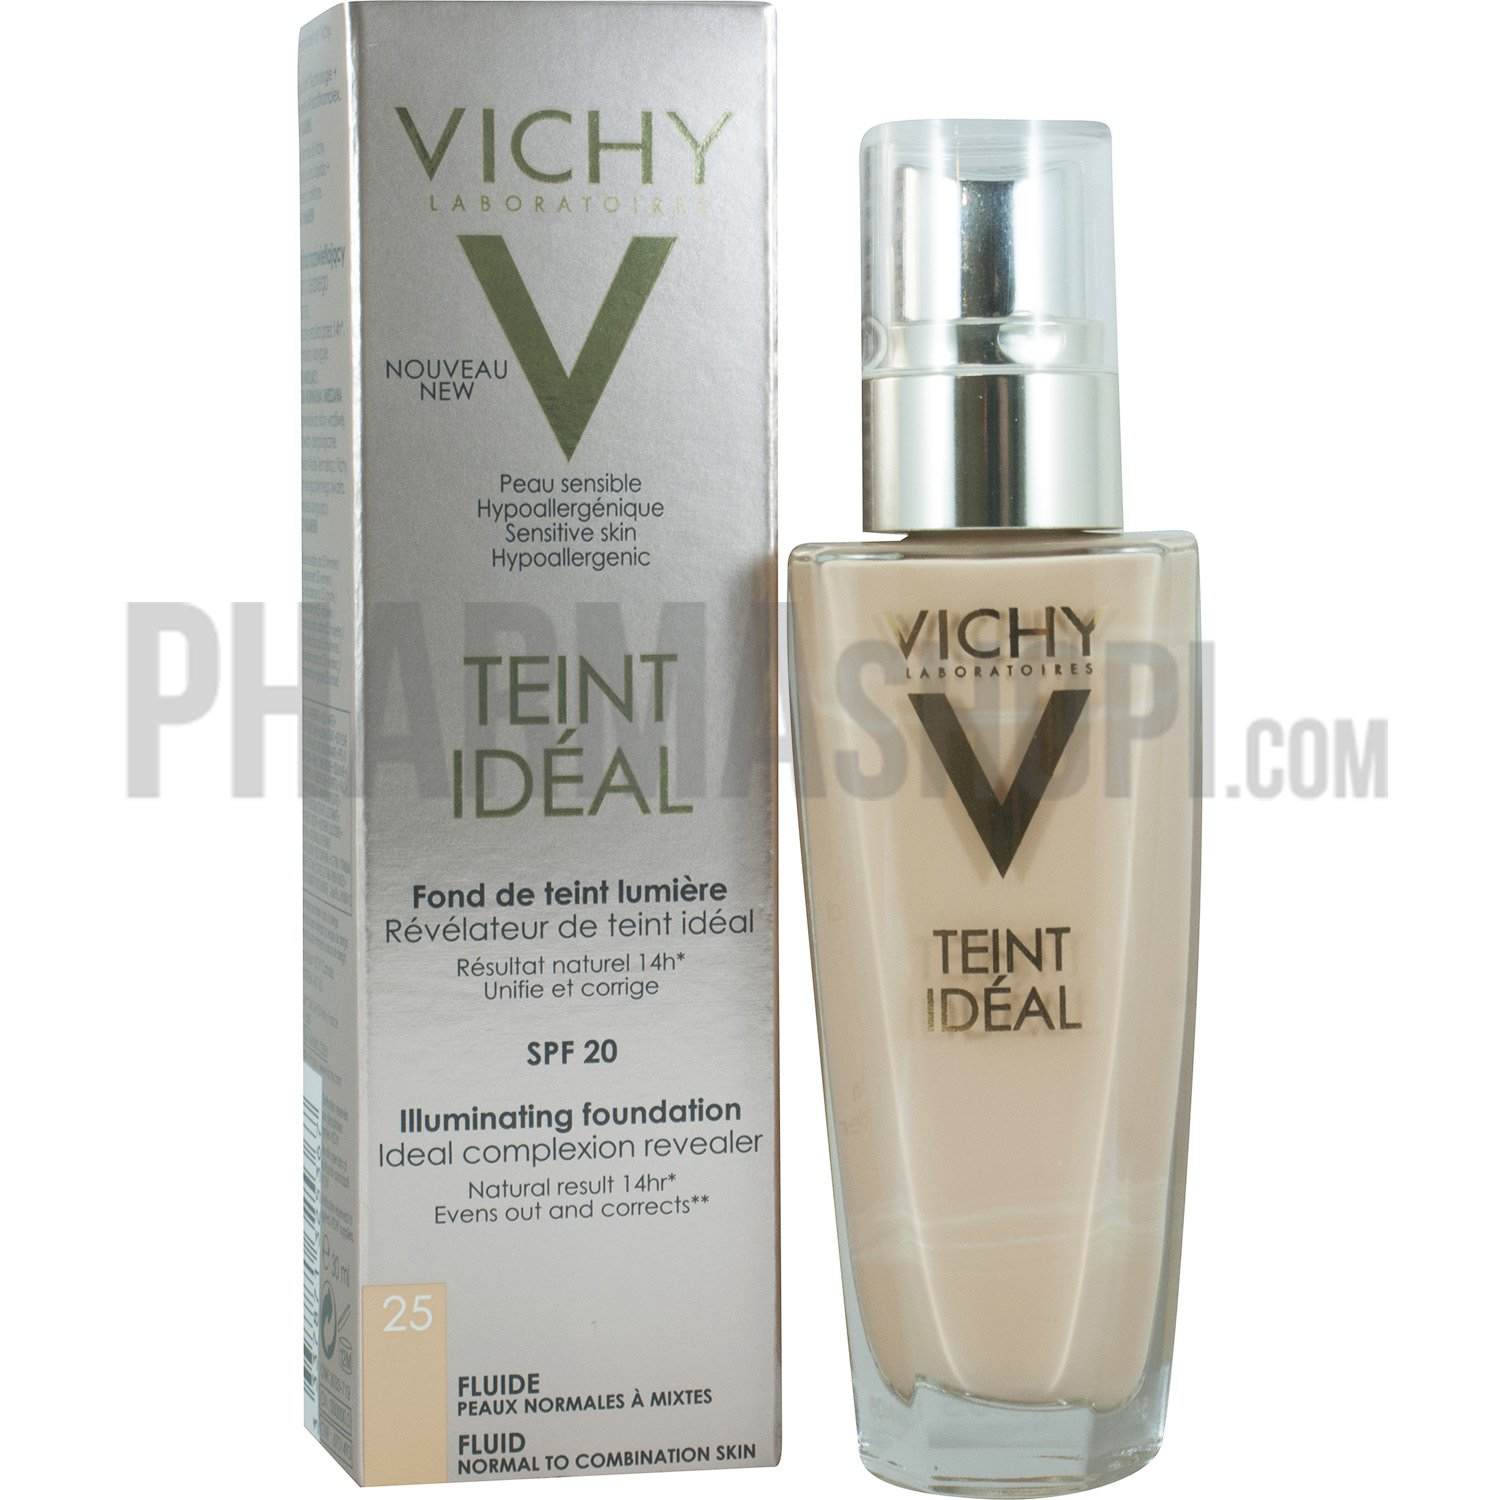 vichy teint id al fluide fond de teint lumi re spf 20. Black Bedroom Furniture Sets. Home Design Ideas